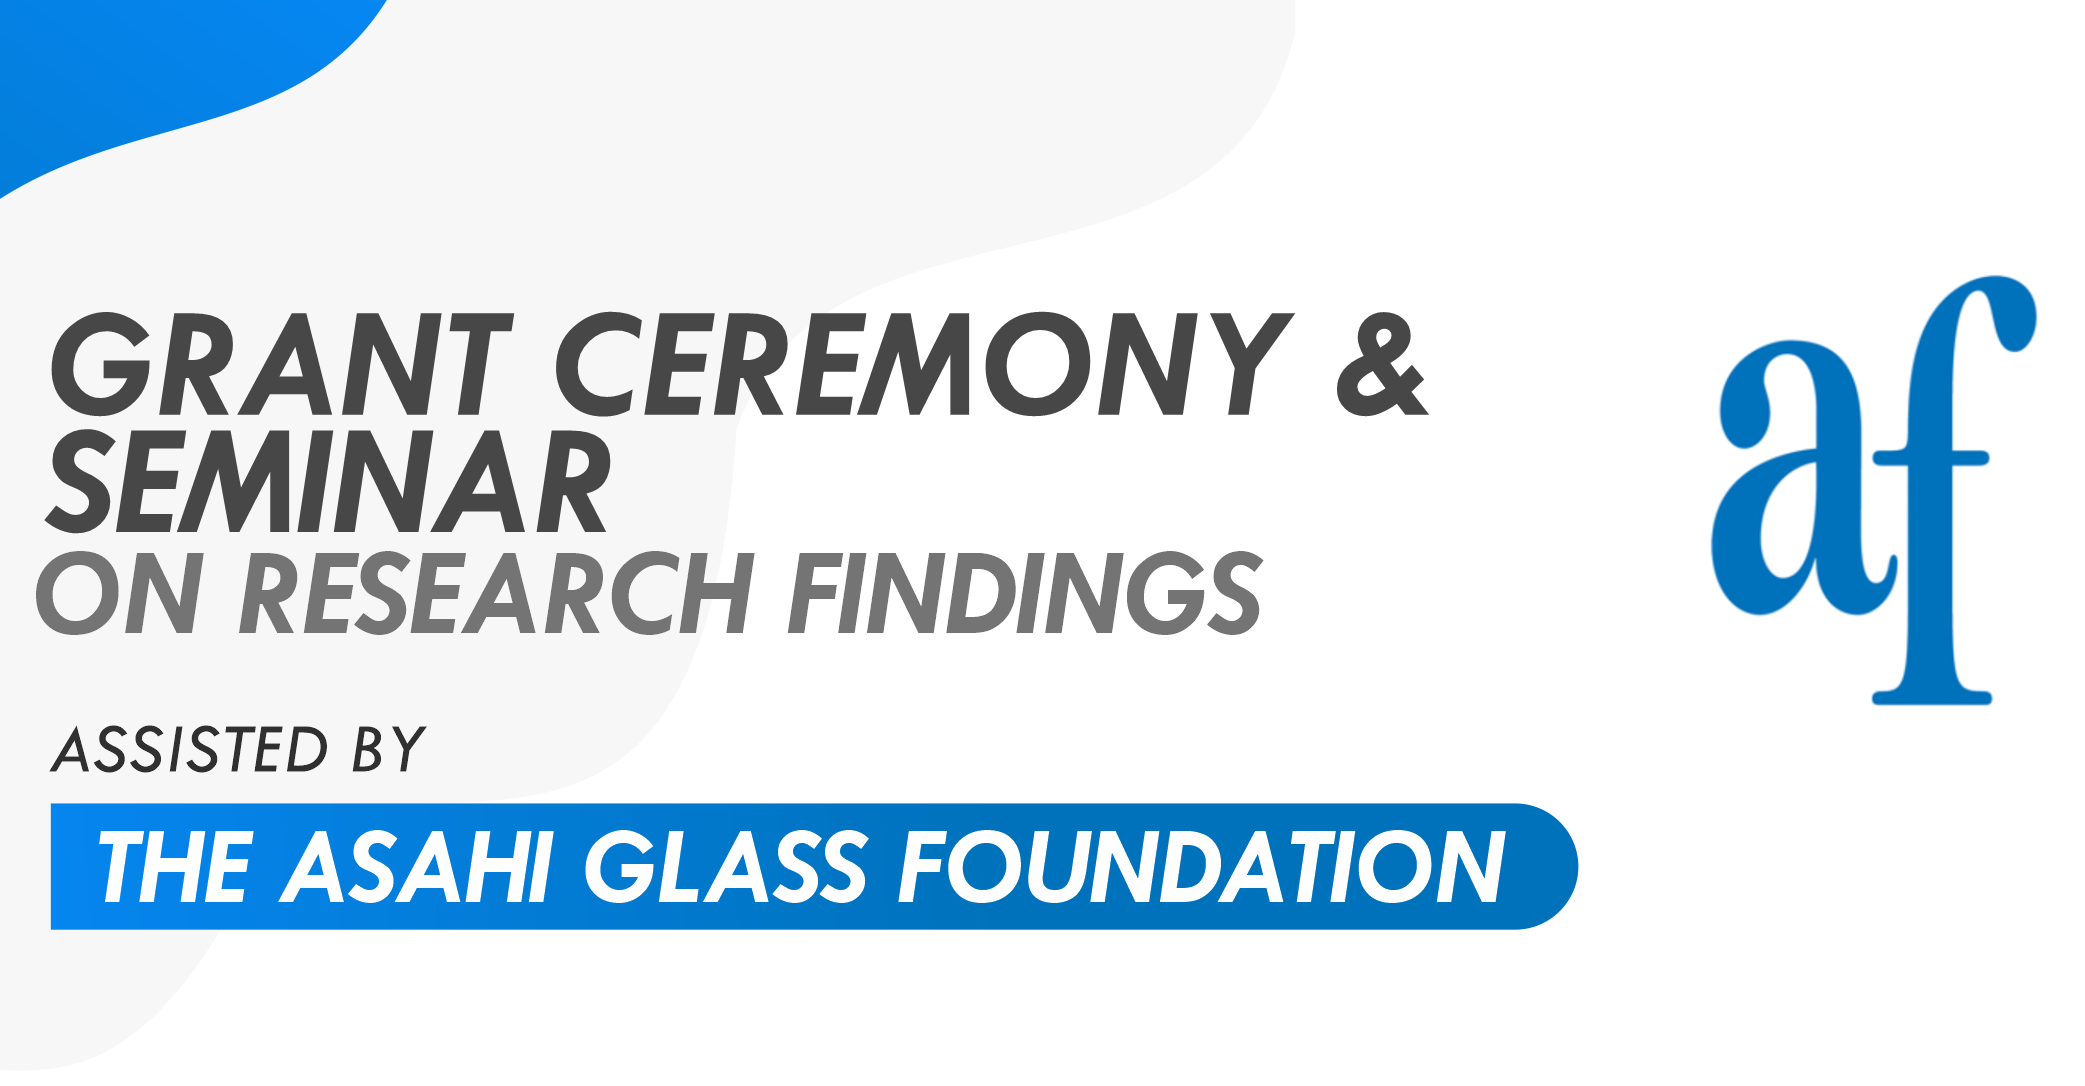 Grant Ceremony & Seminar on Research Findings Assisted by The Asahi Glass Foundation 2020